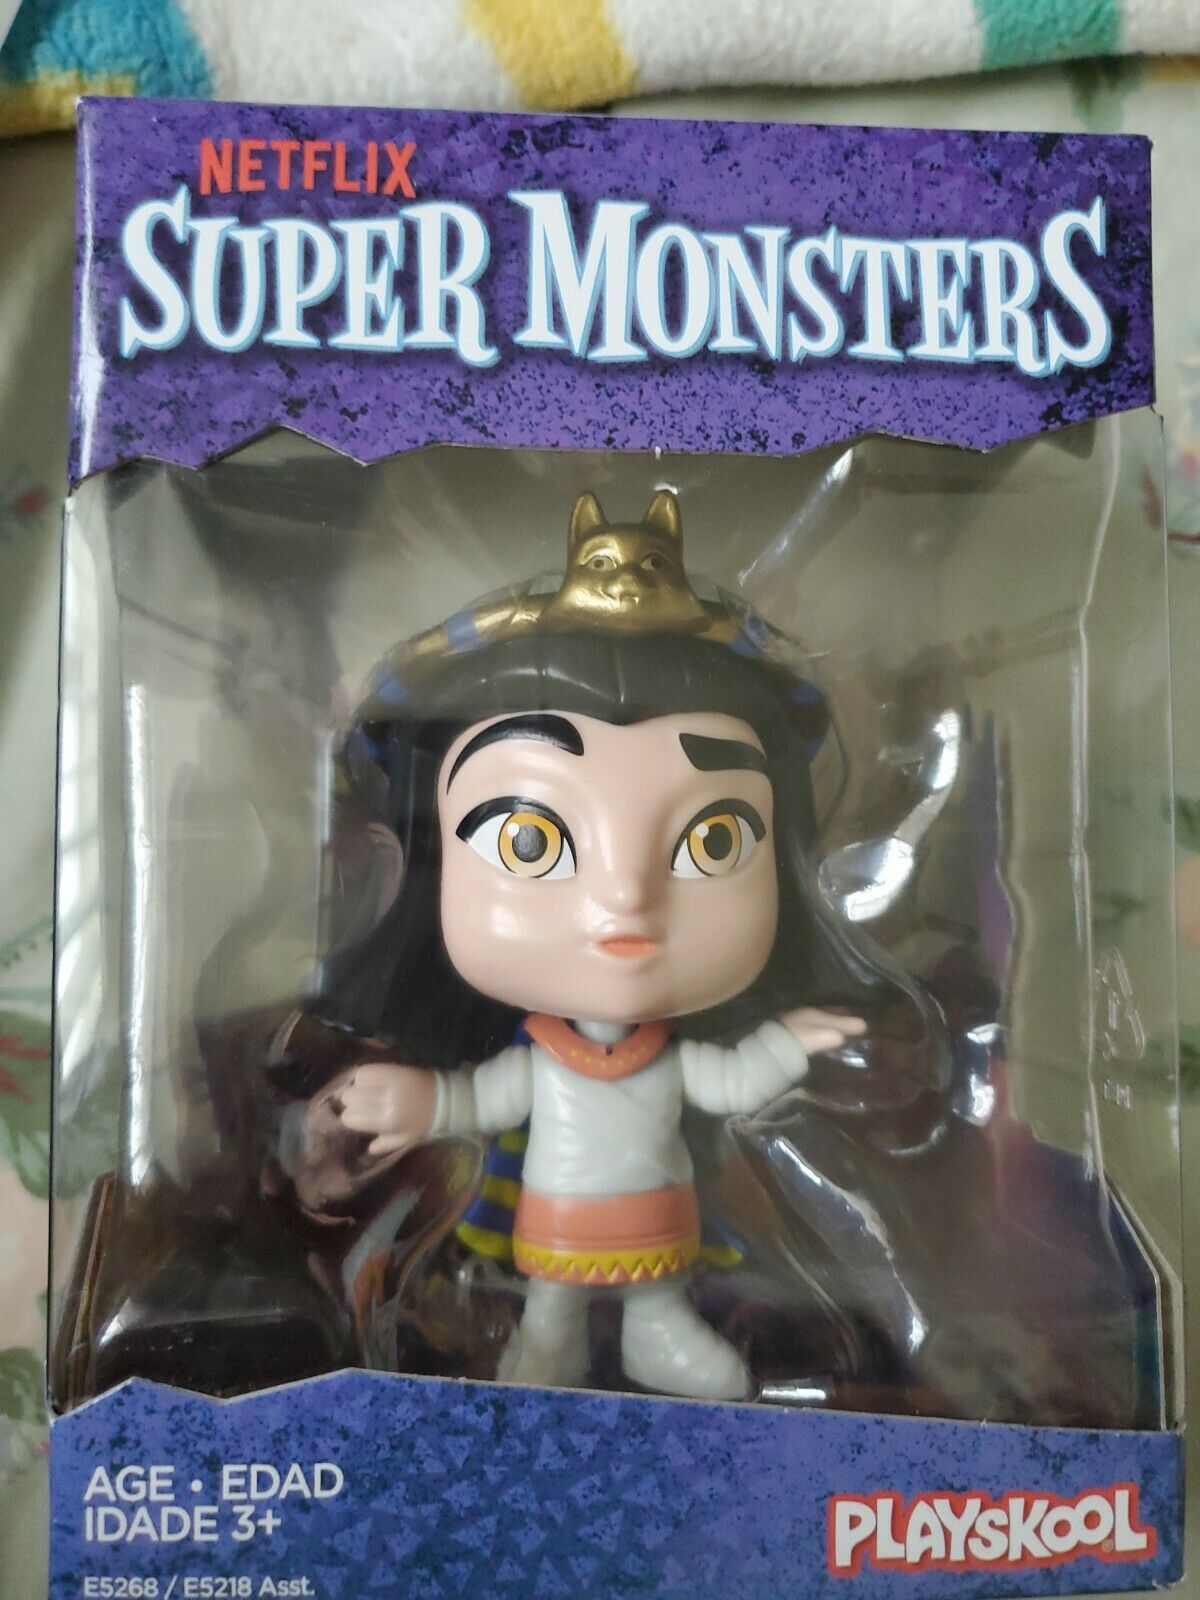 Netflix Super Monsters Cleo Graves Collectible Figure For Sale Online